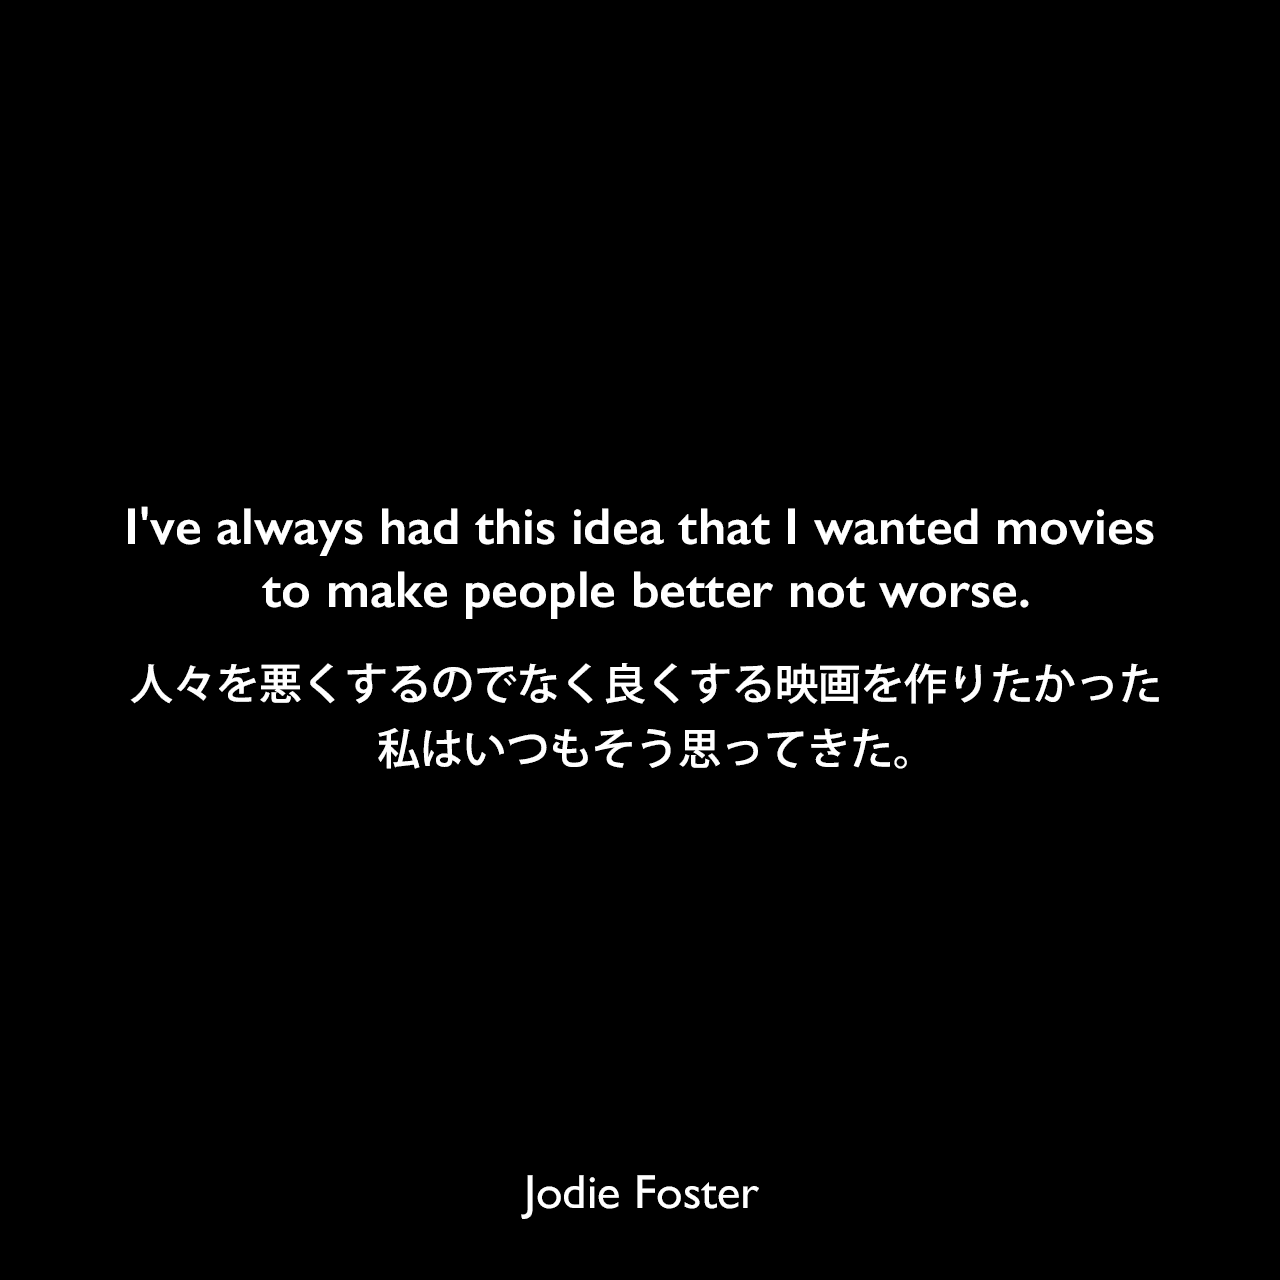 I've always had this idea that I wanted movies to make people better not worse.人々を悪くするのでなく良くする映画を作りたかった、私はいつもそう思ってきた。Jodie Foster